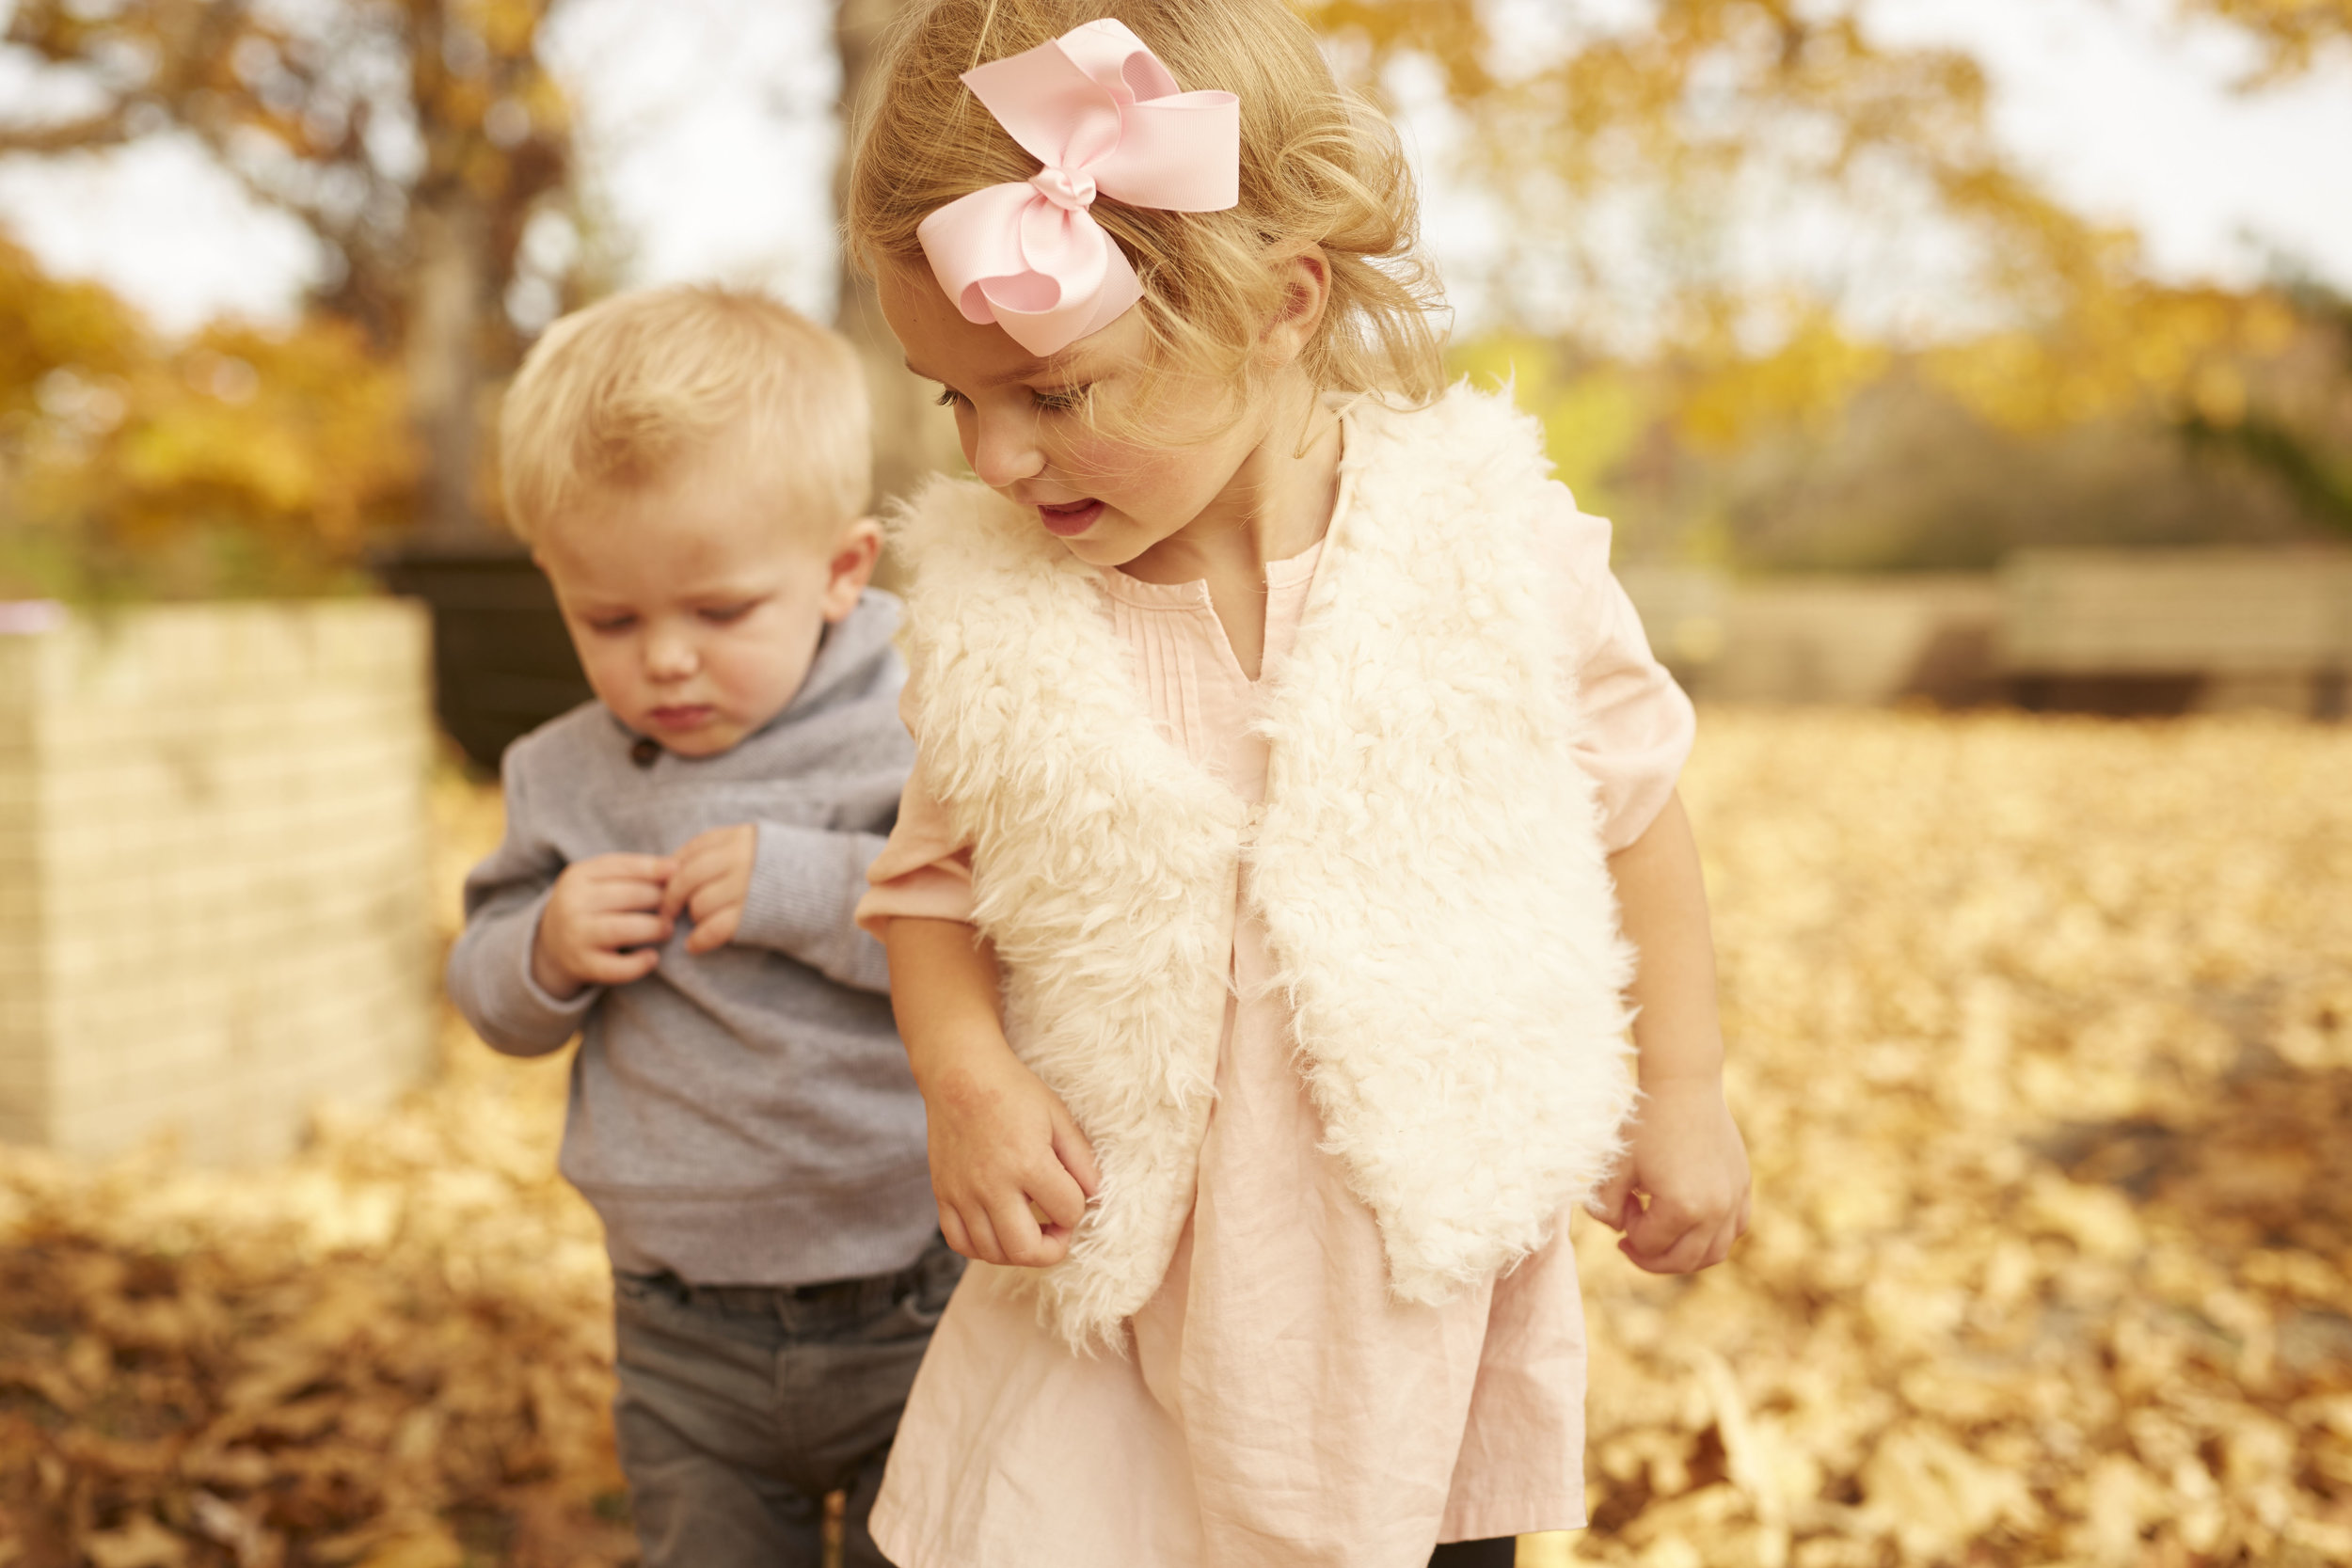 family photography in park with toddlers